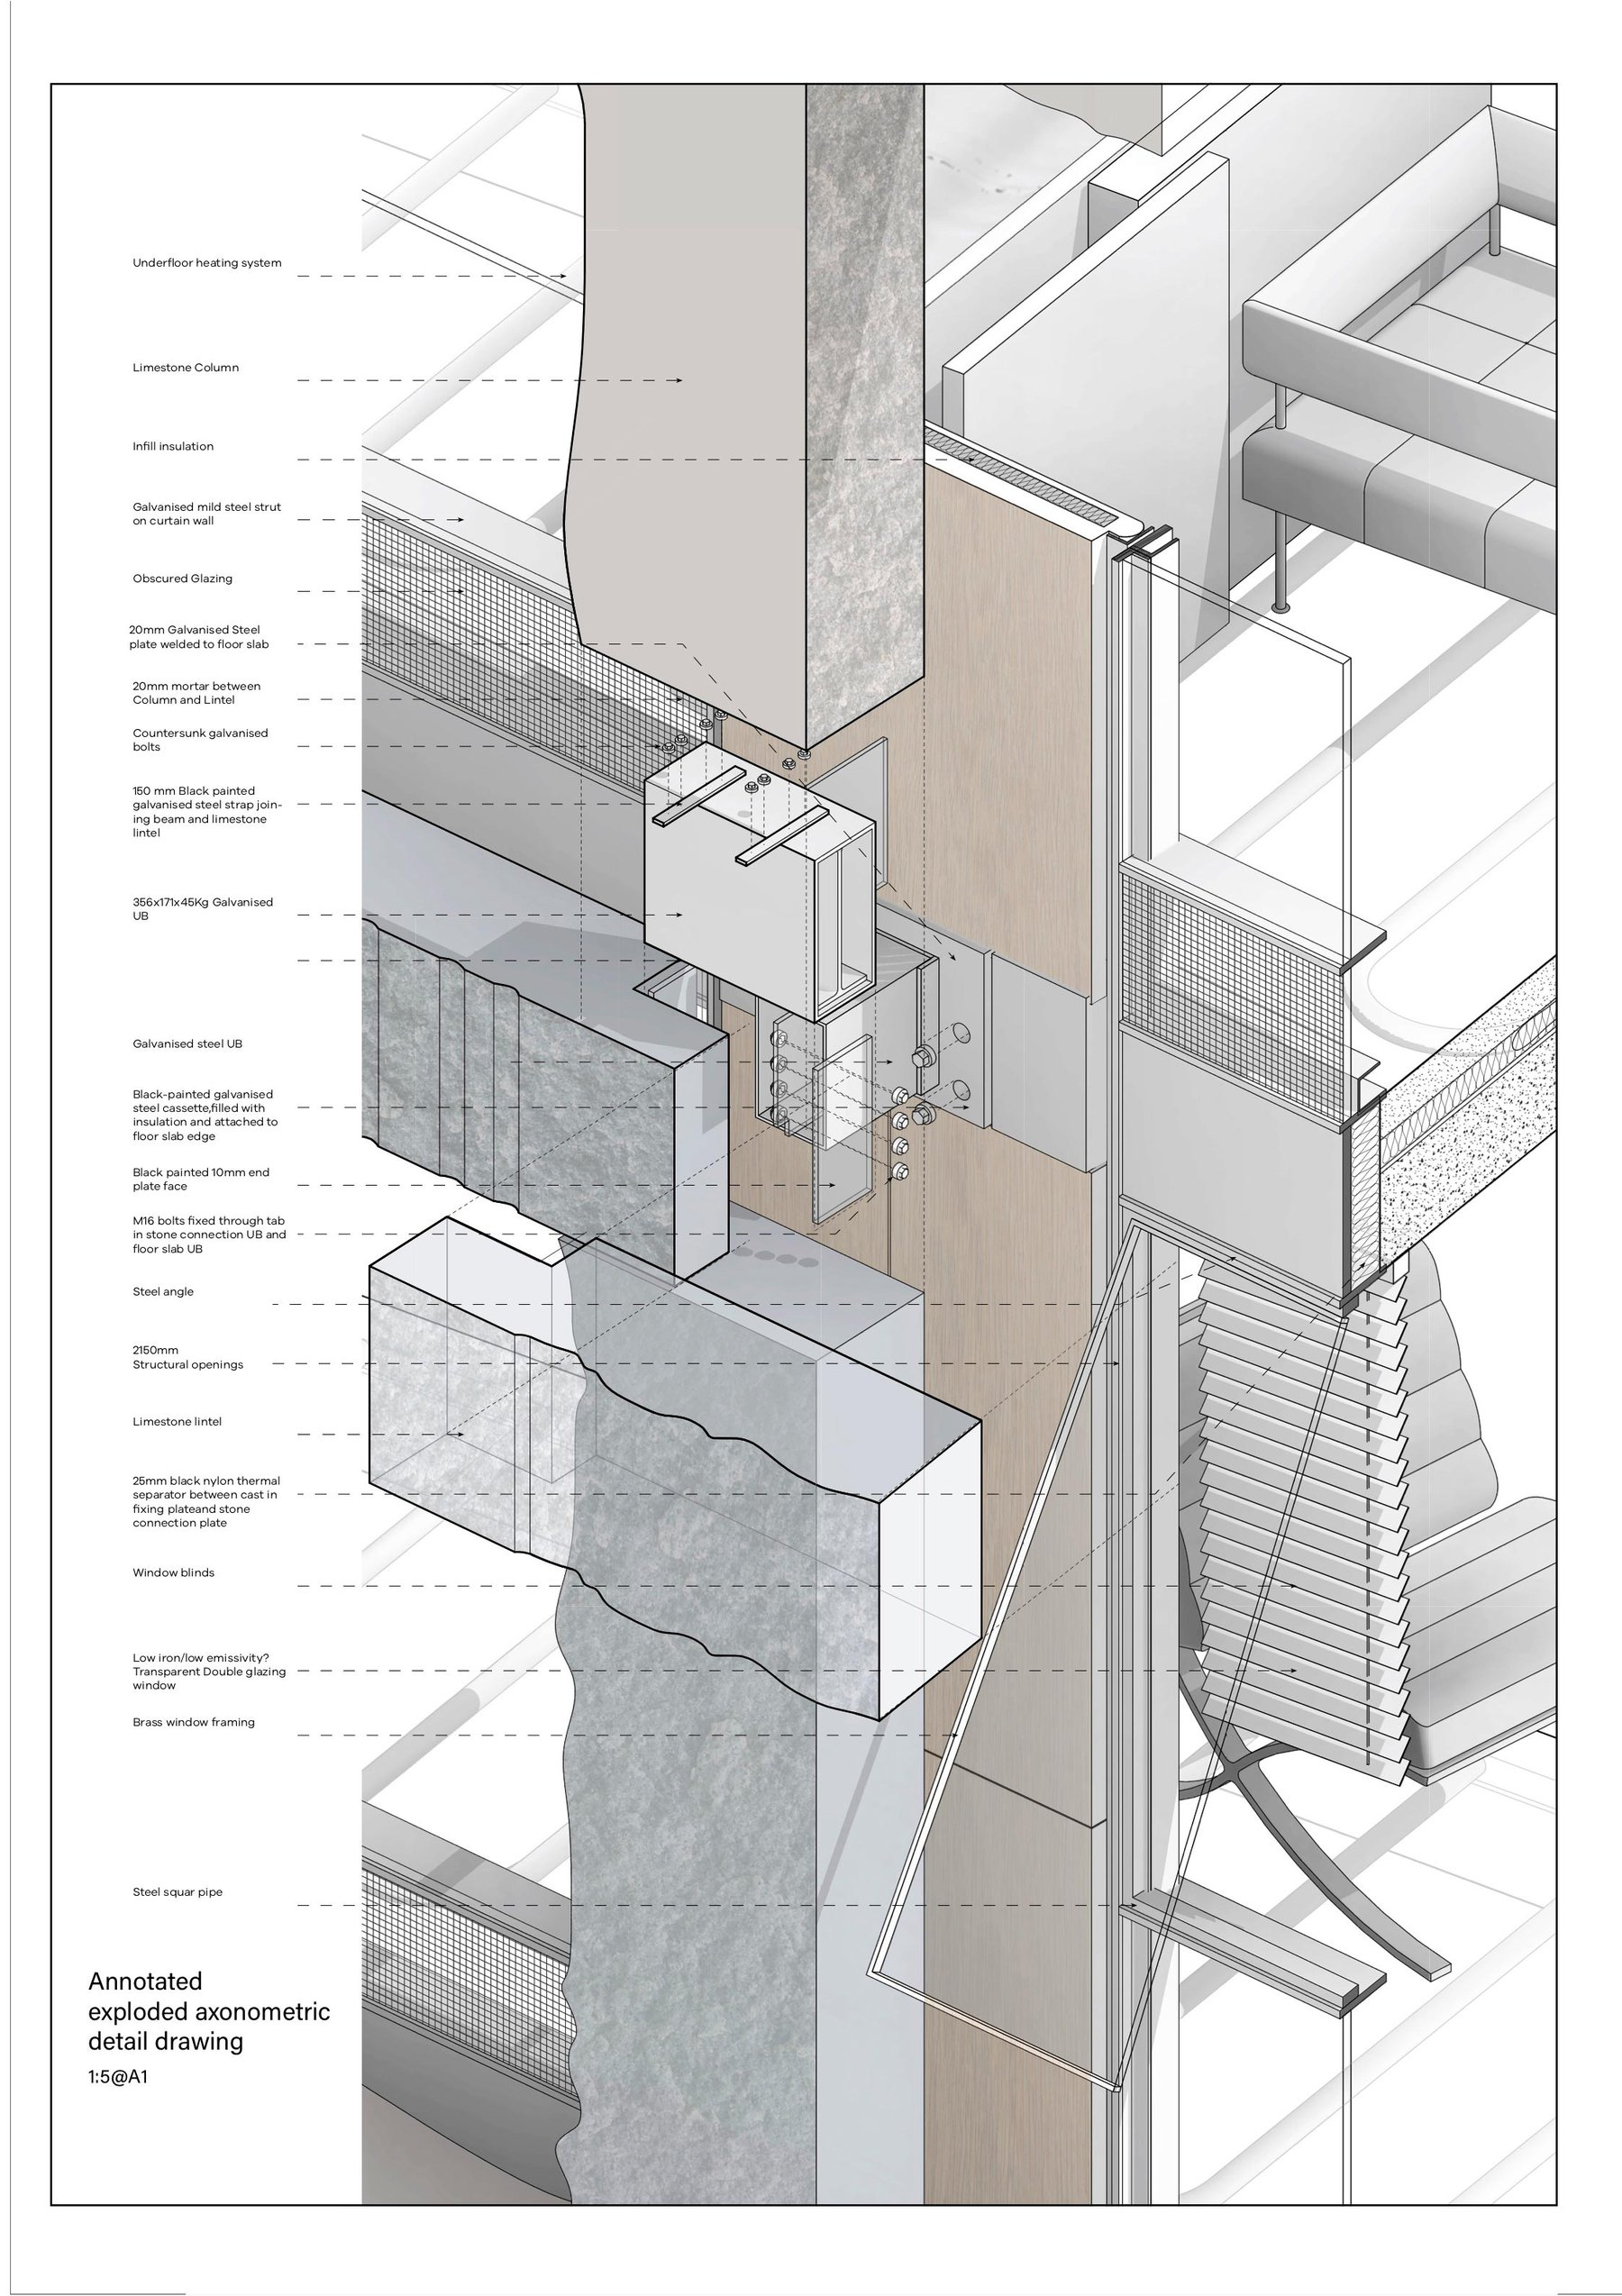 Ian-Bugarin_Annotated_Drawings_15-Clerkenwell-Place_Exploded-Axonometric-Detail.jpg